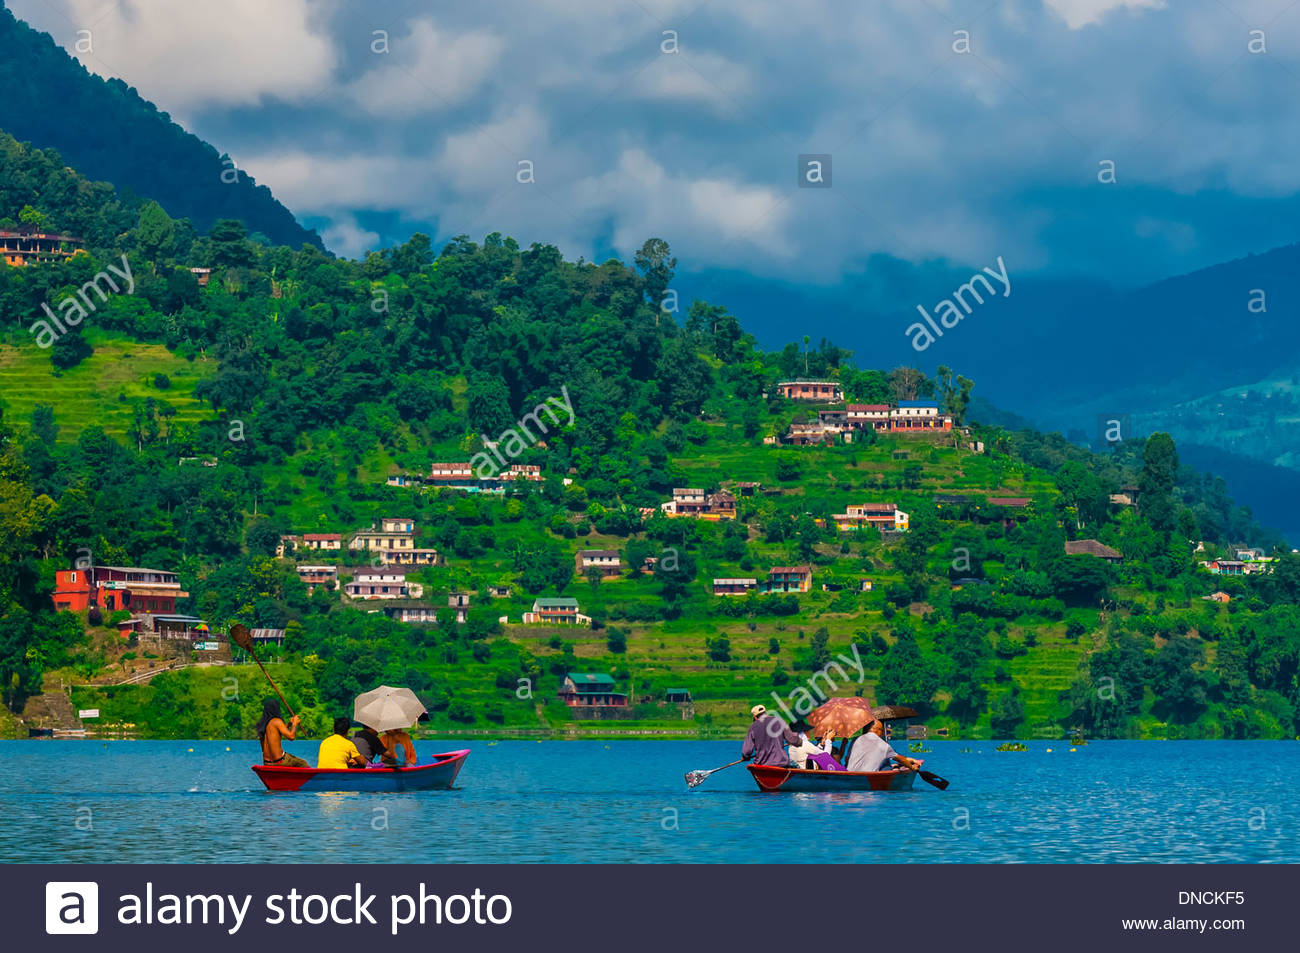 Phewa Lake, Pokhara, Nepal. Stock Photo